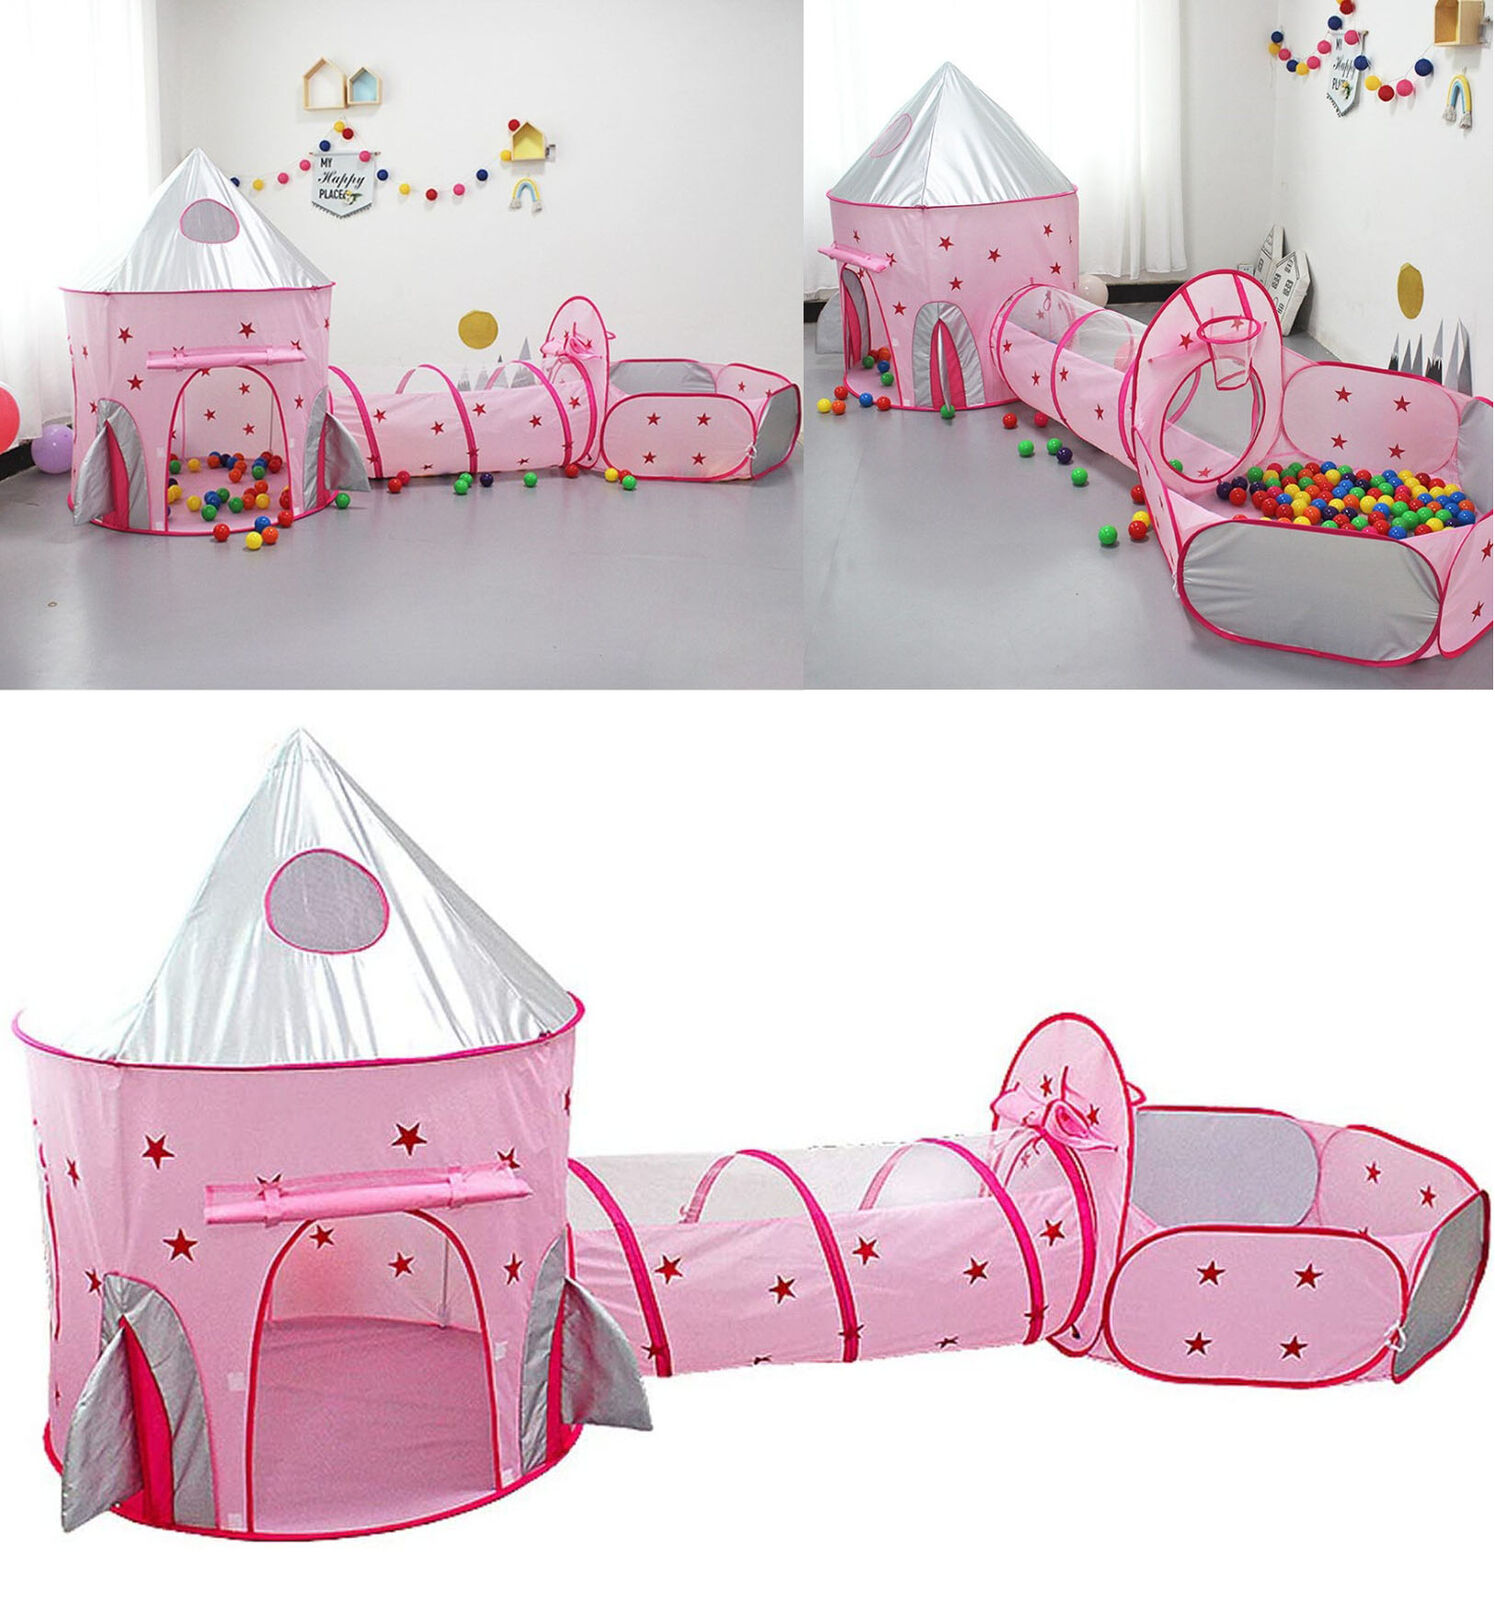 3 In 1 Kids Play Tent Crawl Tunnel Pop Up Playhouse Ball Pit